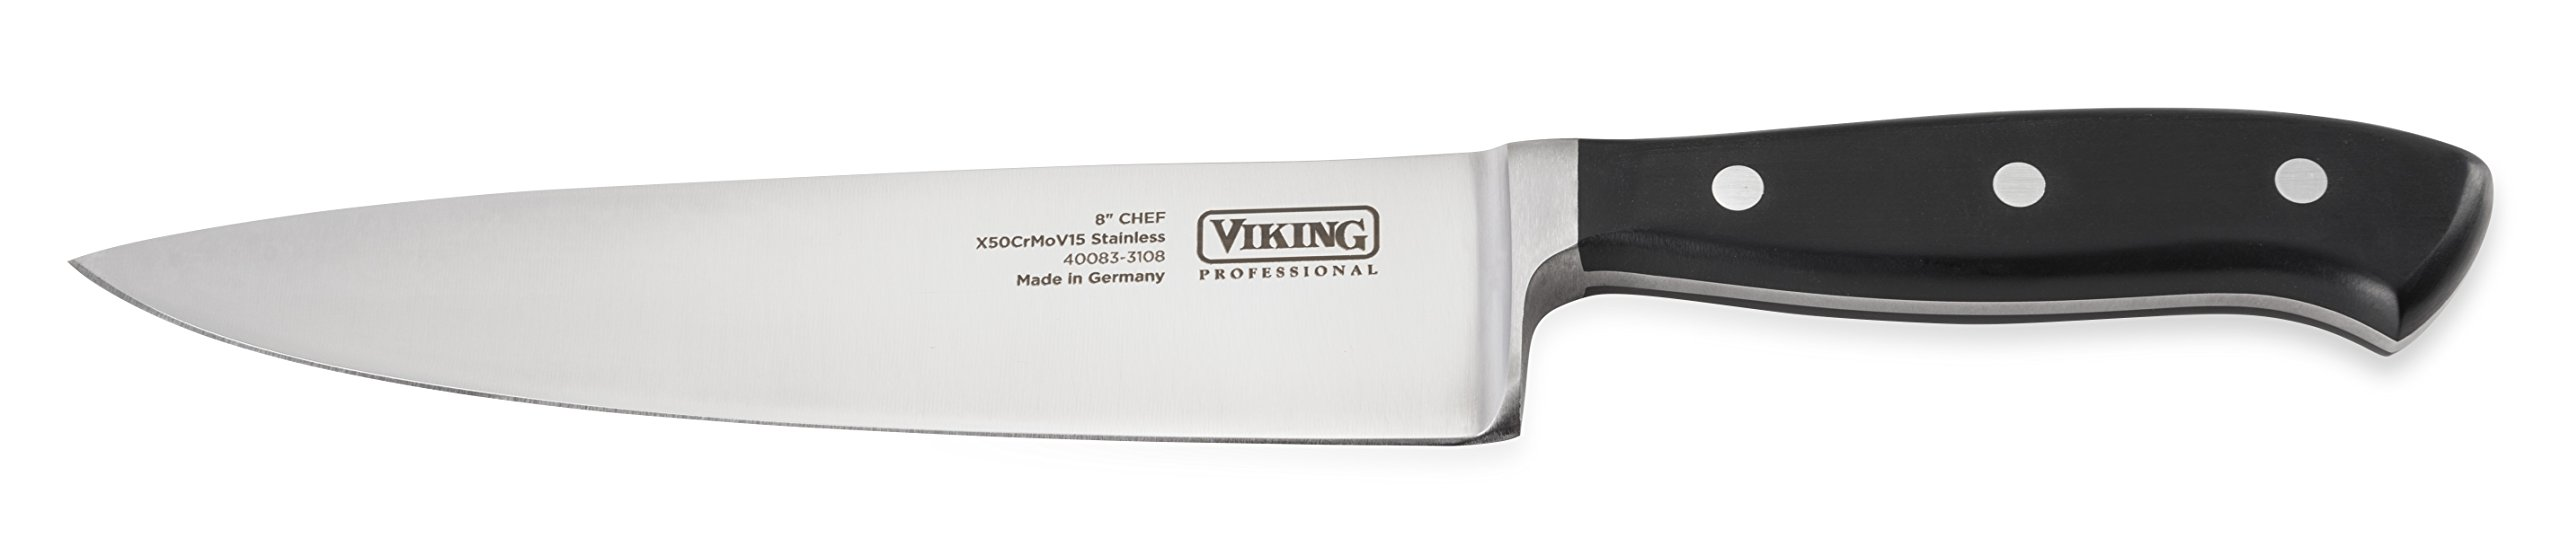 Viking Professional Cutlery Chef's Knife, 8 Inch